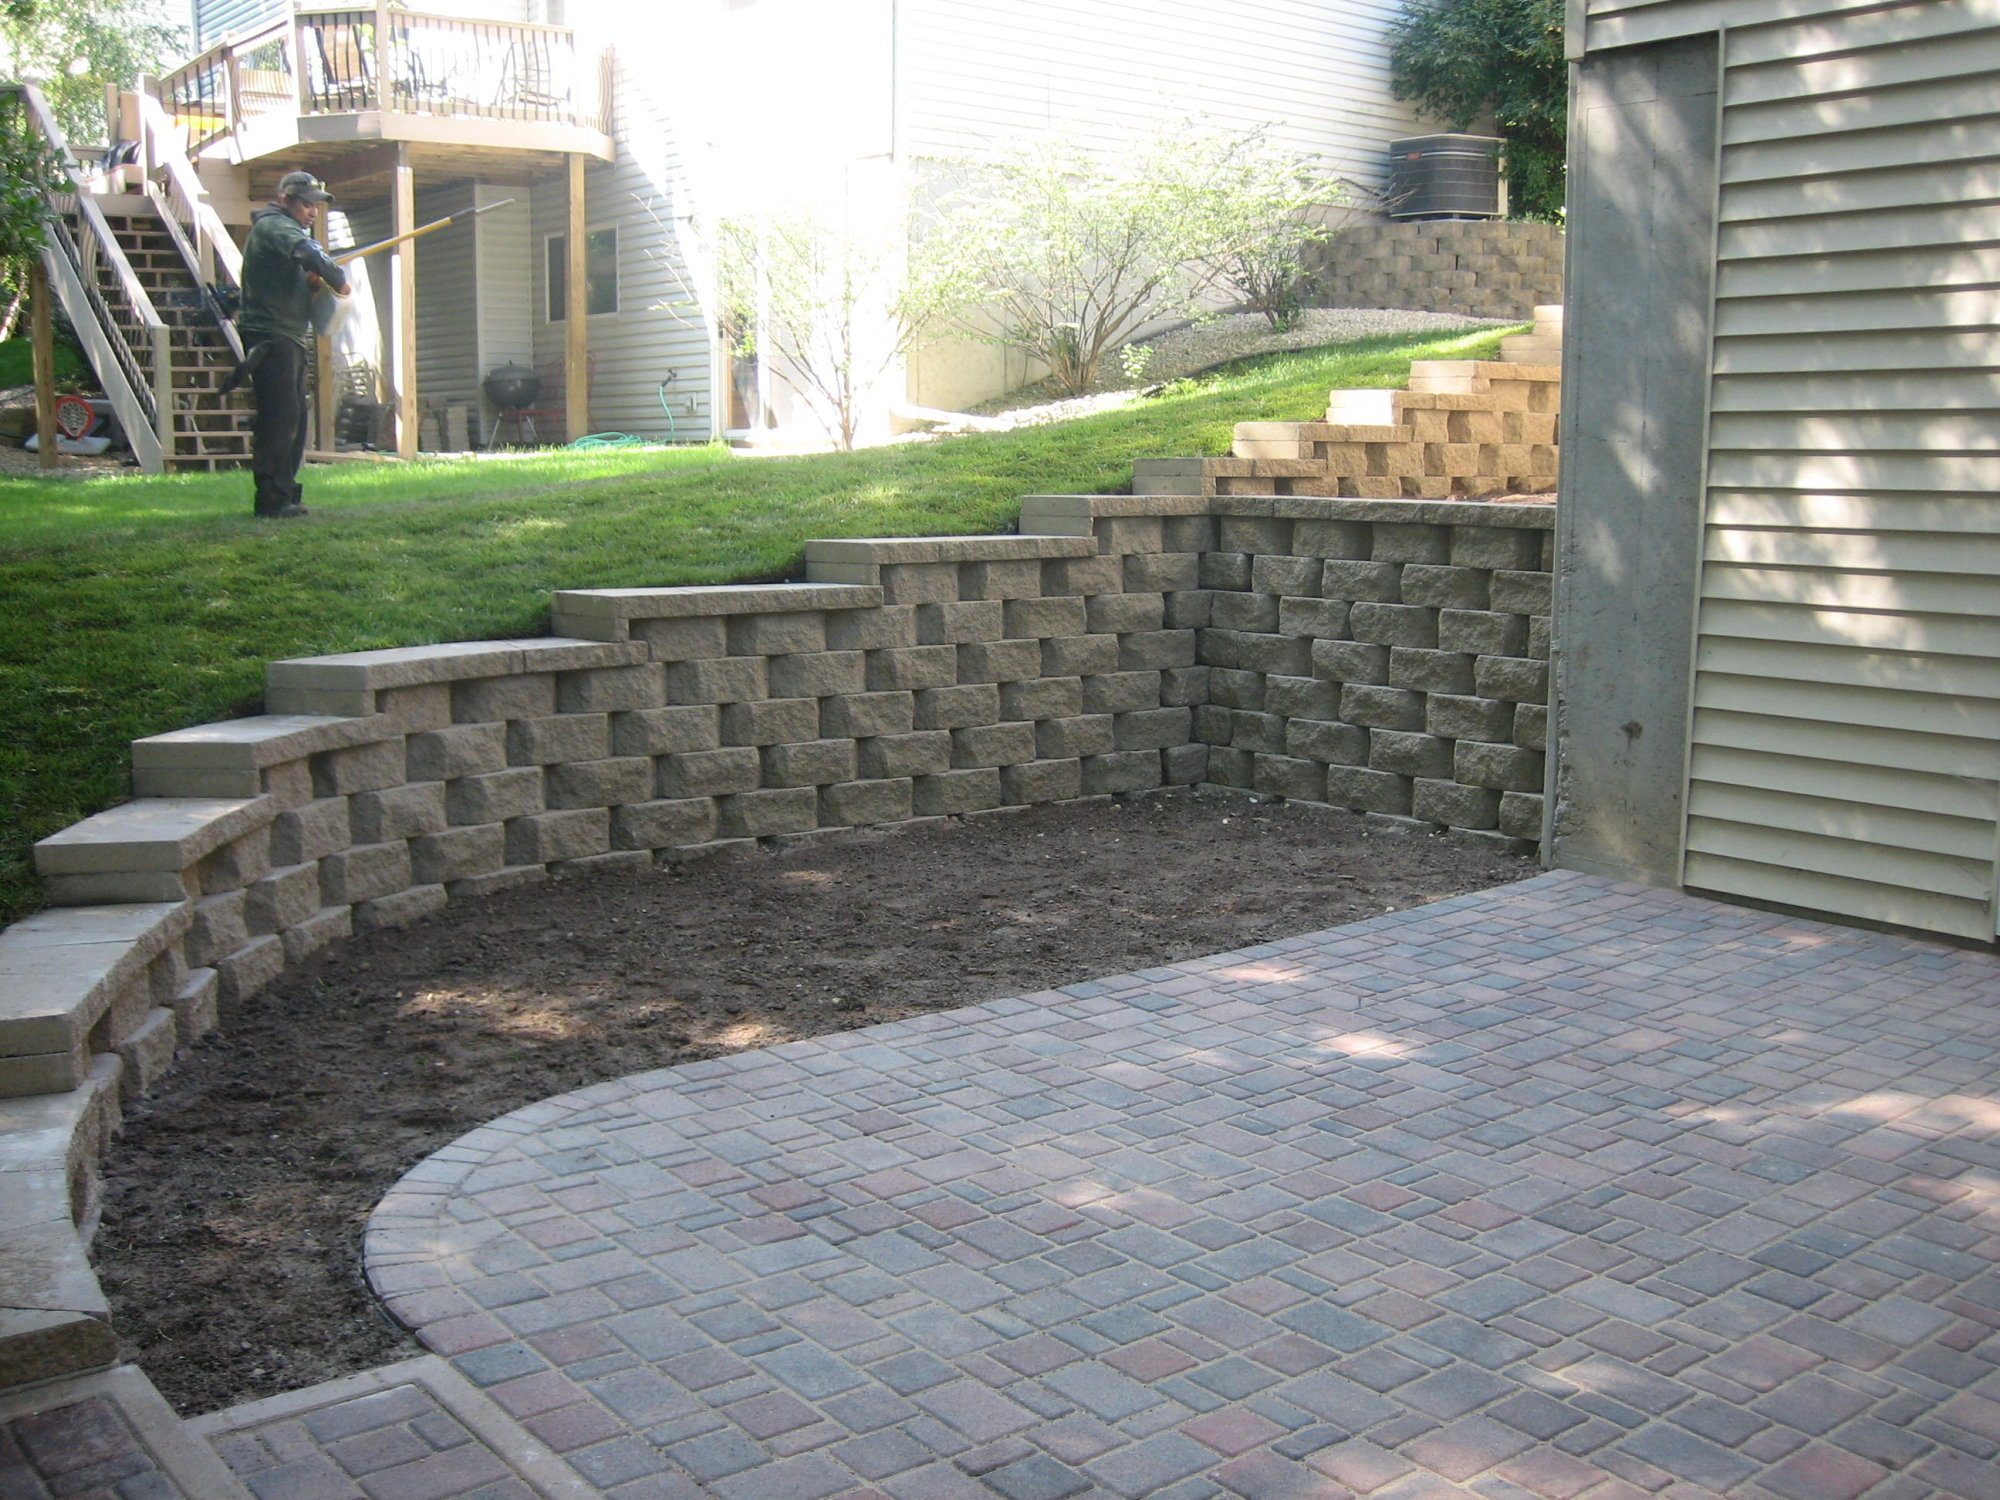 Retaining Wall with Caps and a Paver Patio installed in ... on Patio Stone Wall Ideas  id=43303